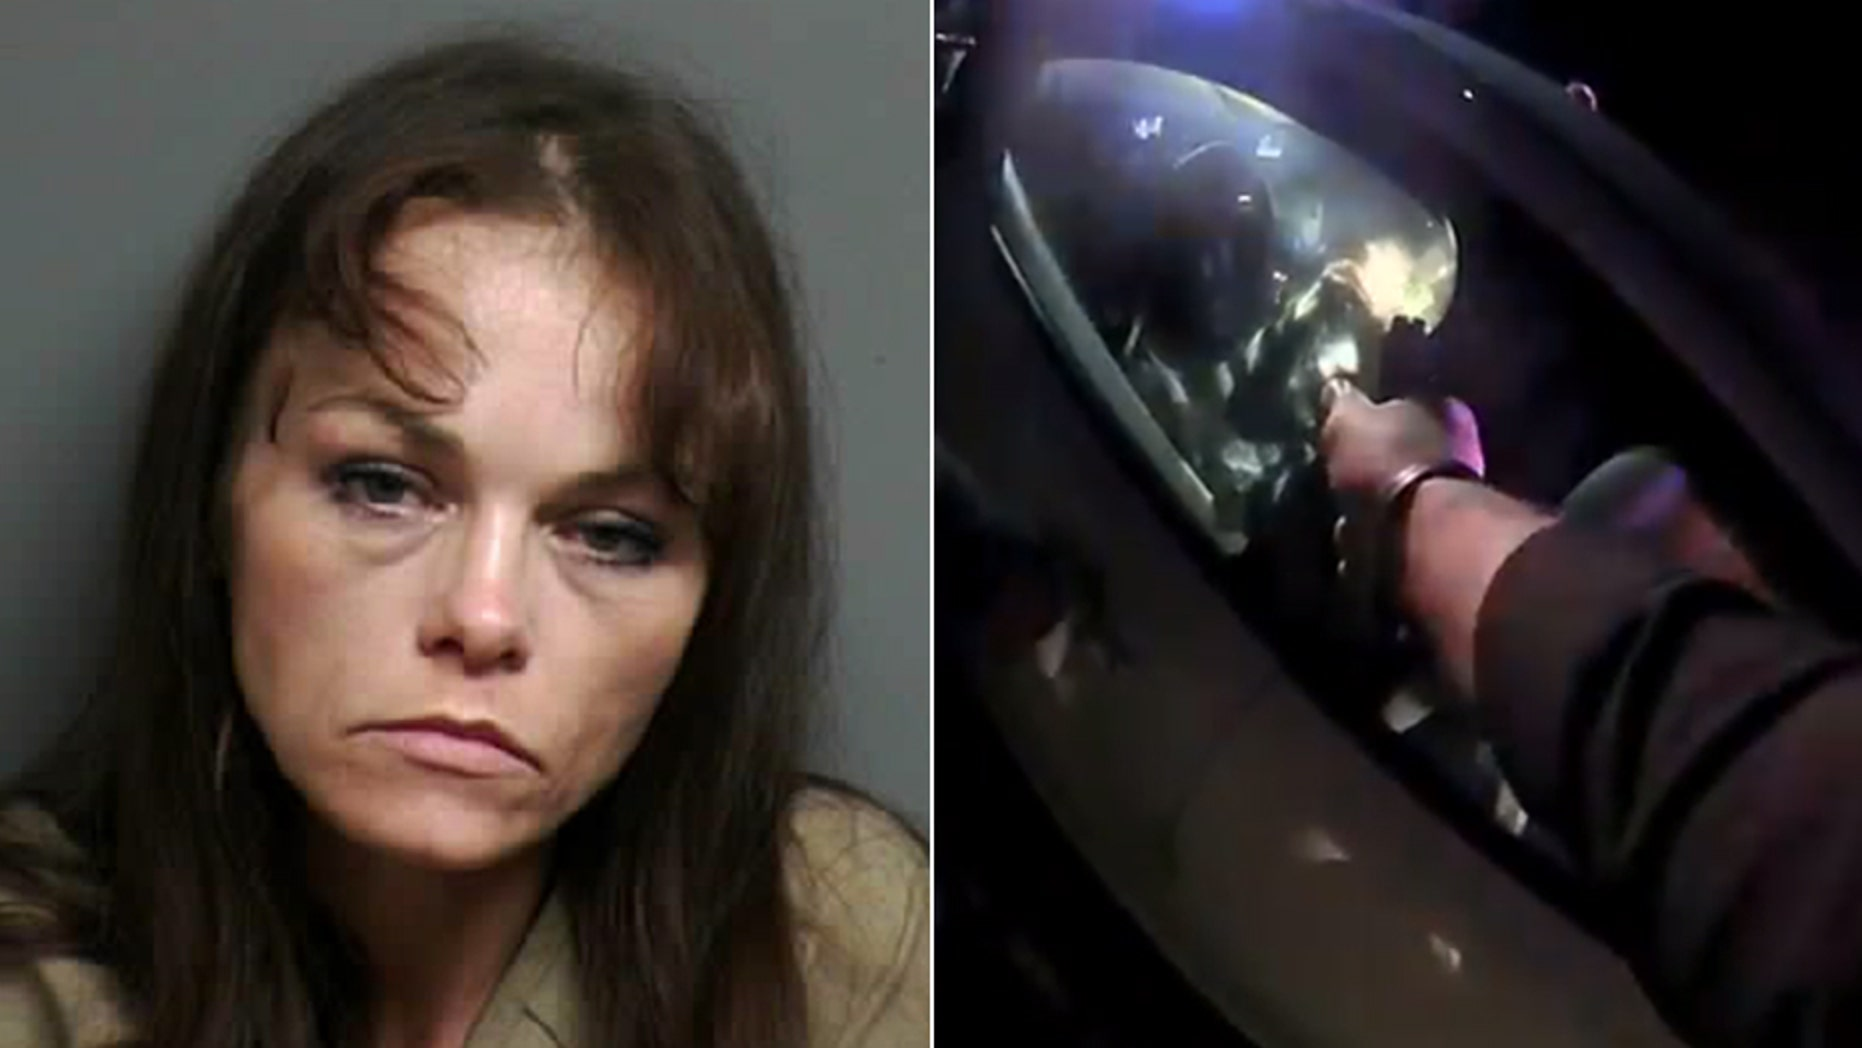 Kristi Rettig, police say, was captured on video reaching under her seat and then lighting a crack pipe after beingpulled over following a chase.